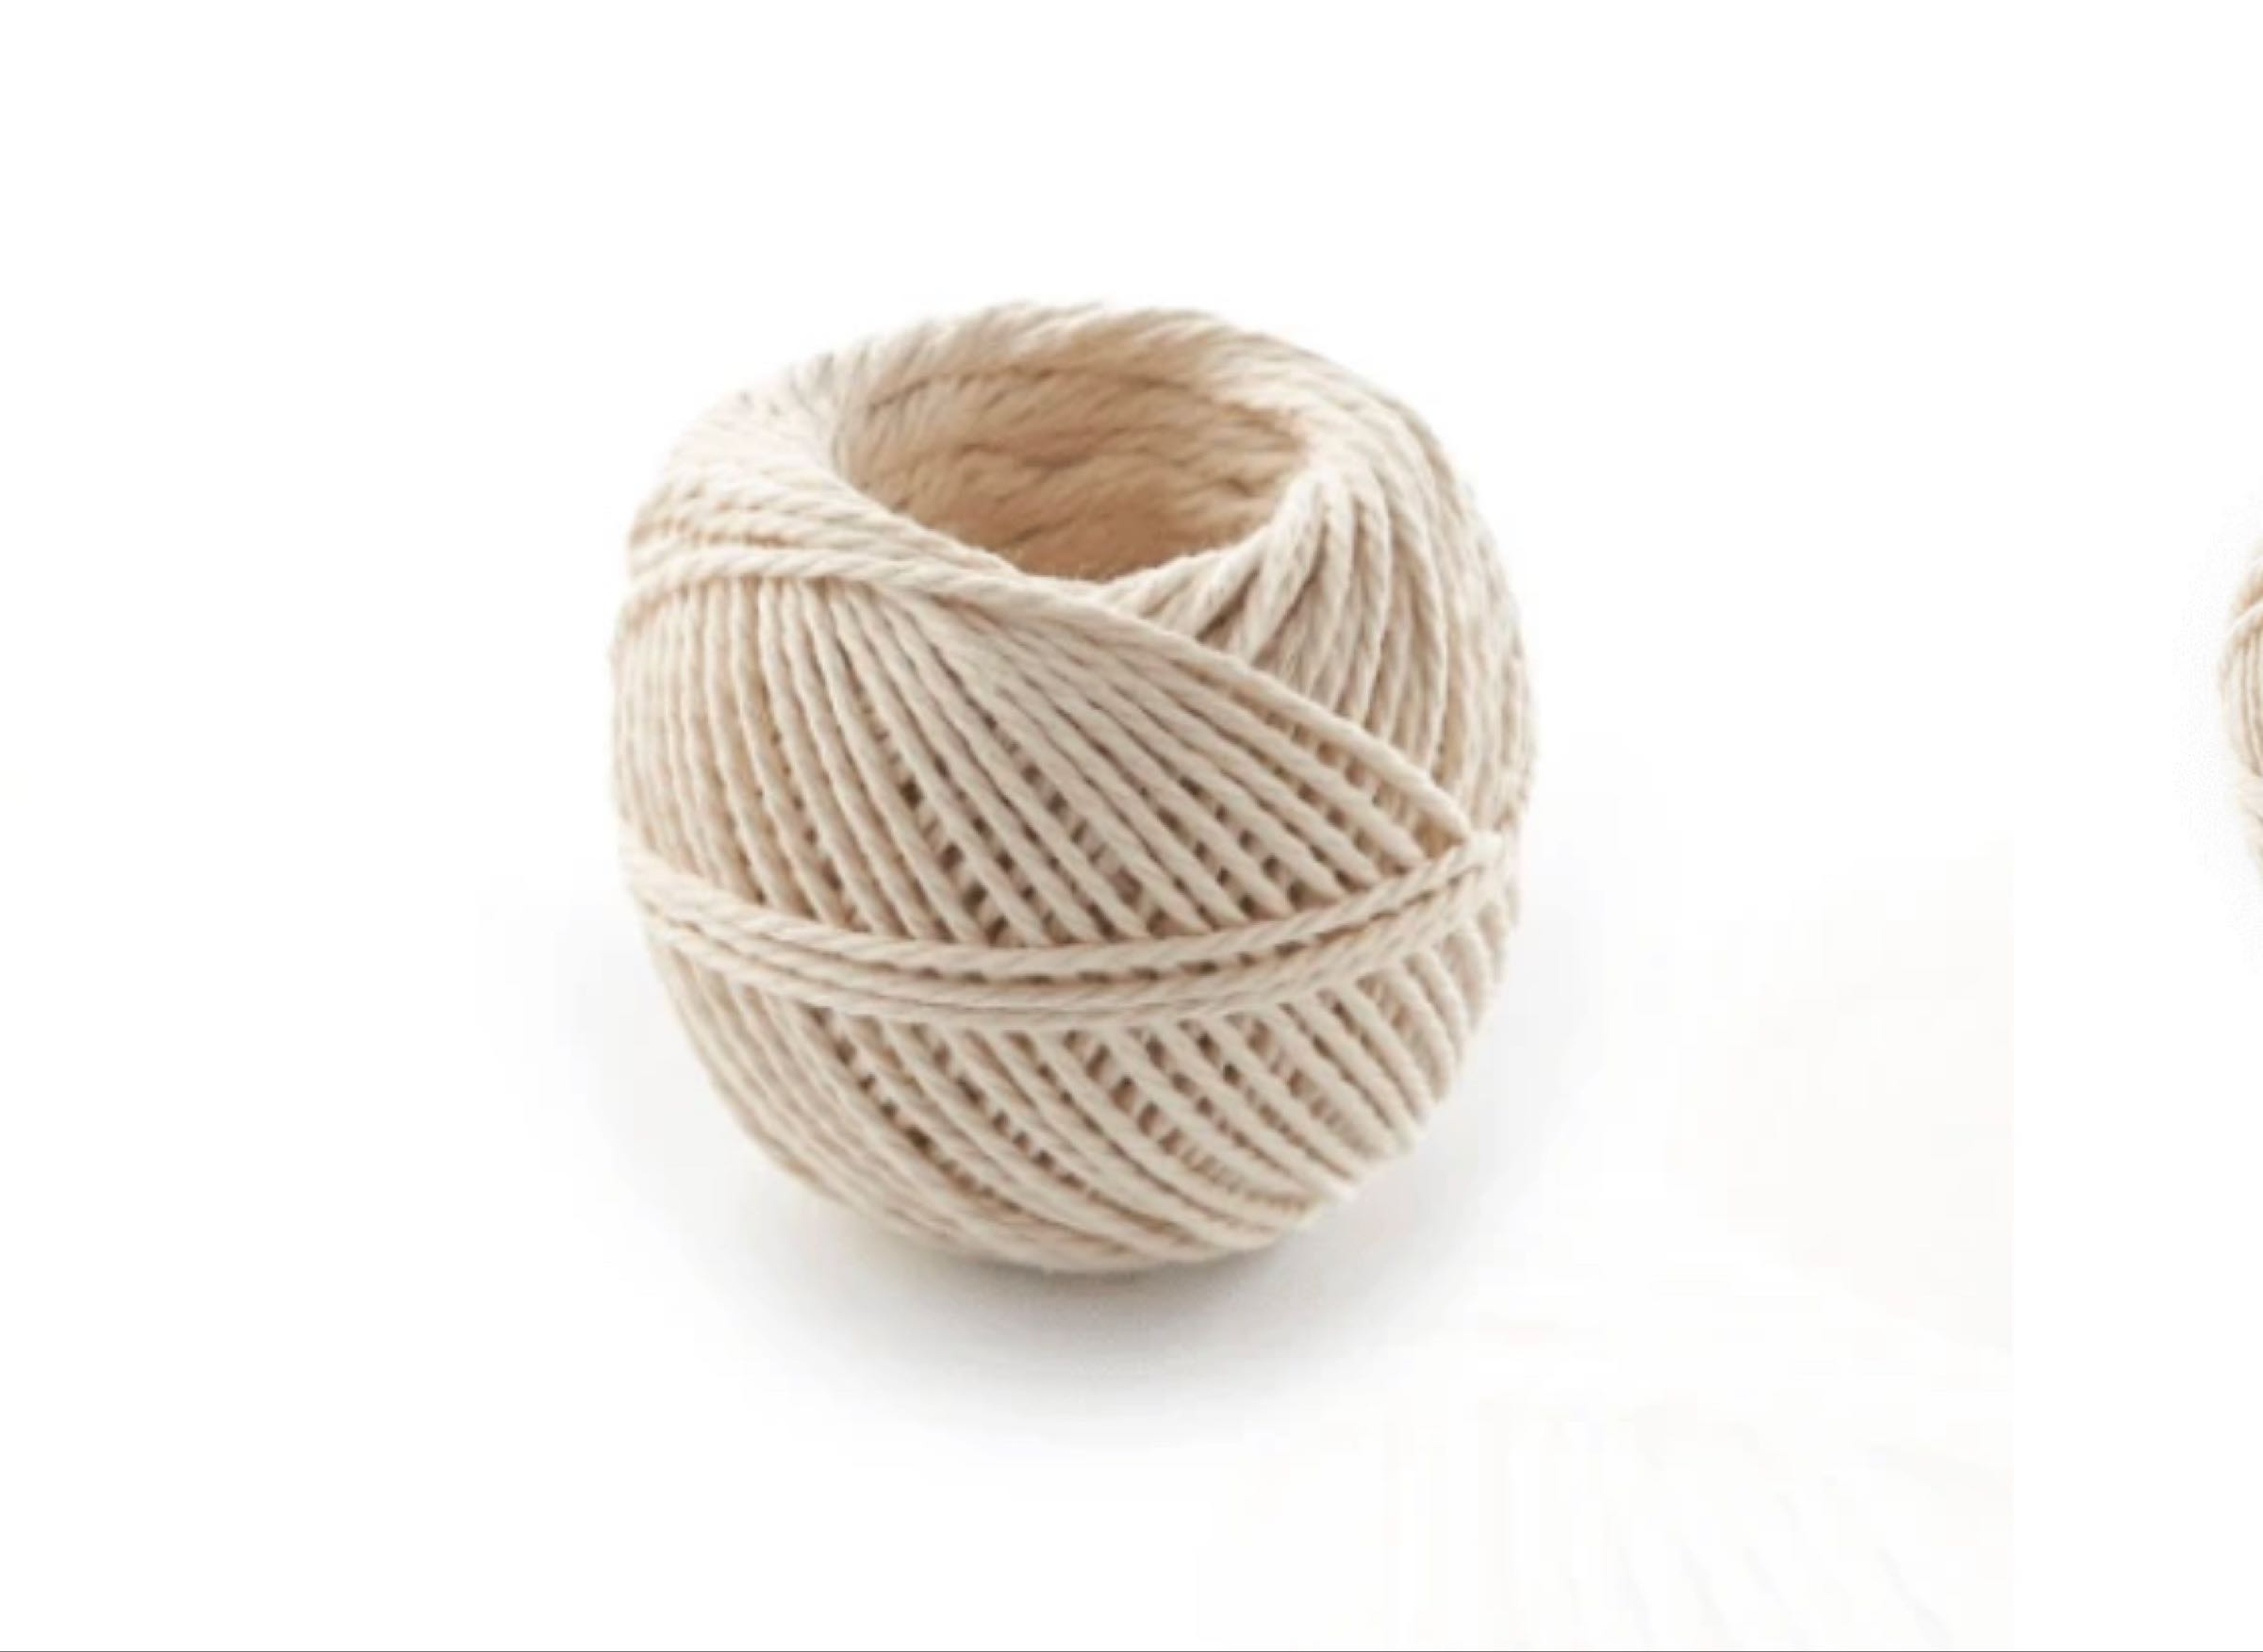 100% Recycled Twine balls